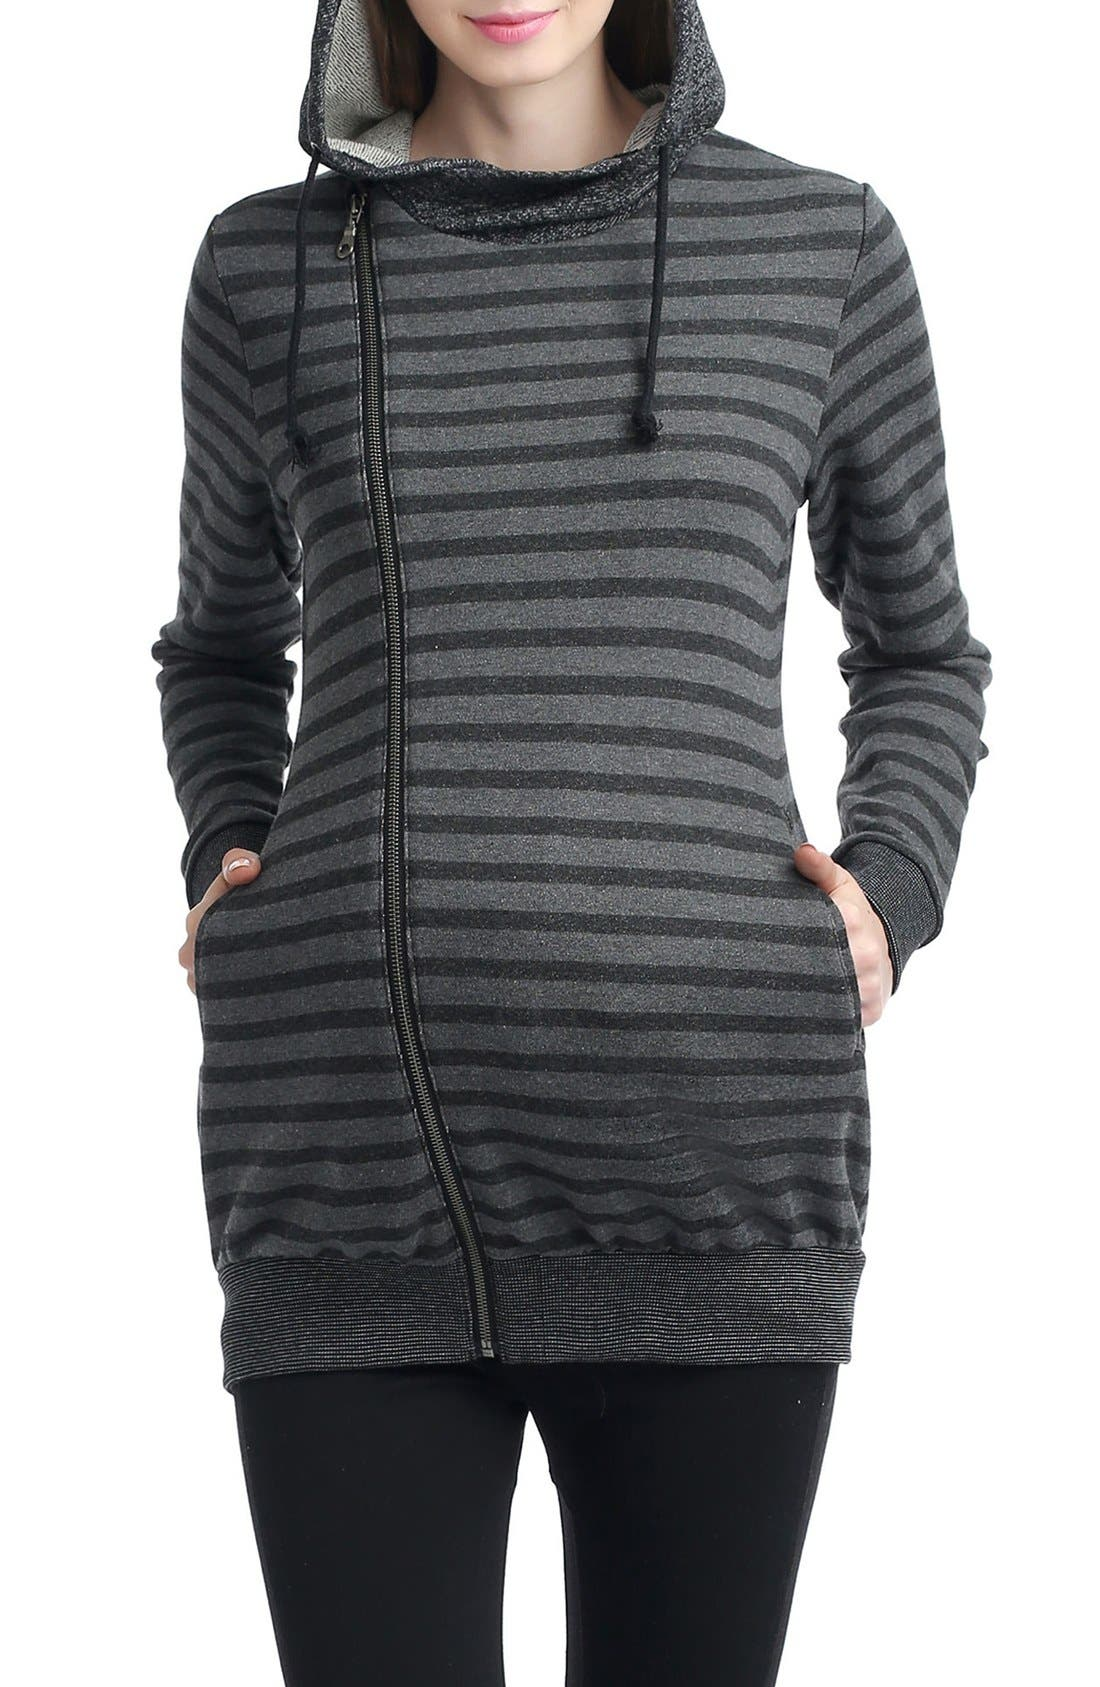 Salena Stripe Maternity Hoodie,                             Main thumbnail 1, color,                             Black/ Dark Heather Gray